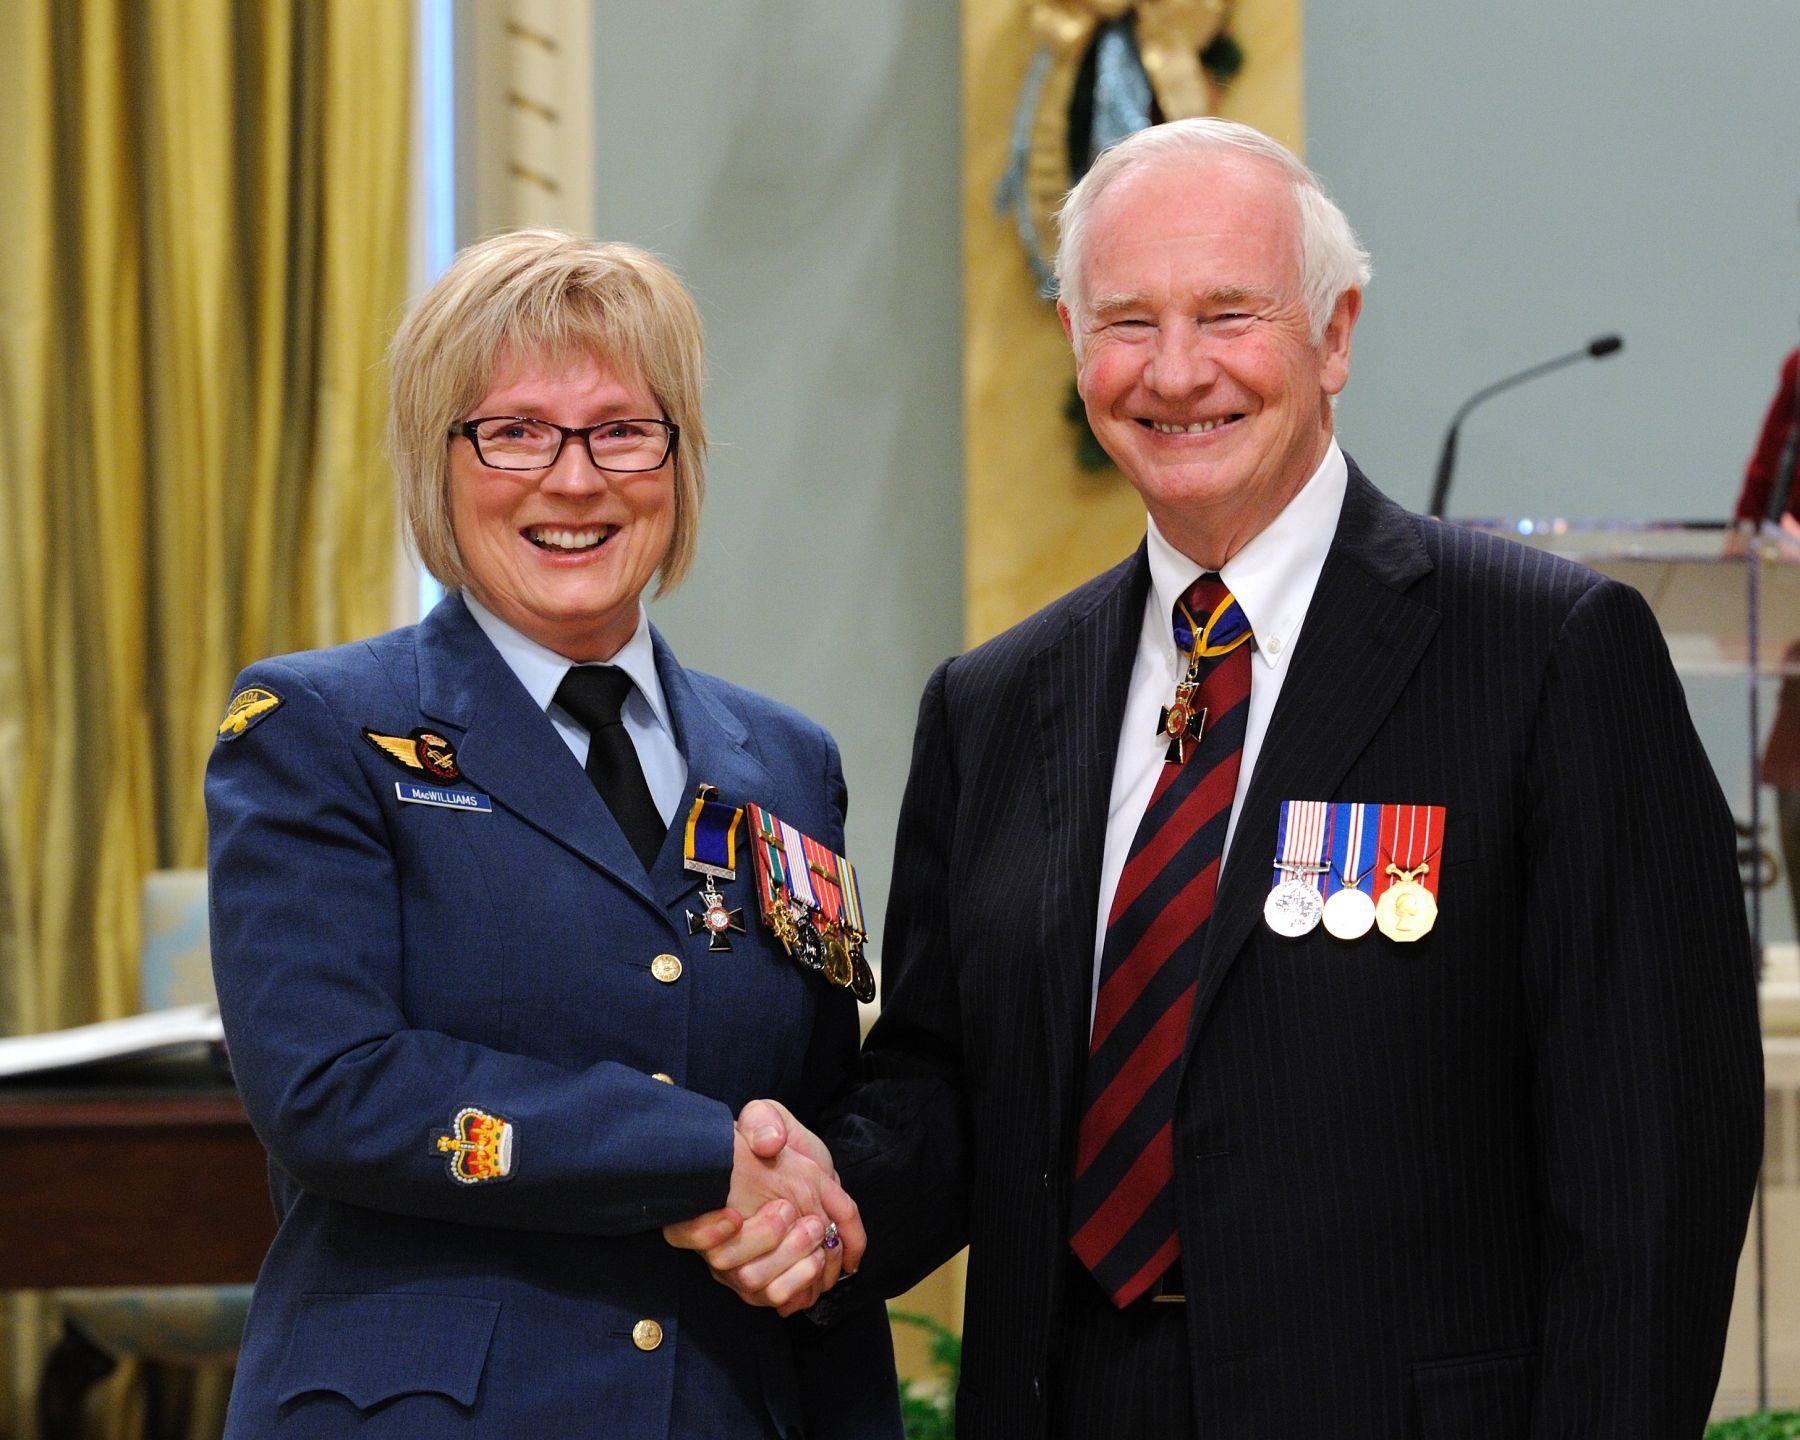 His Excellency presented the Order of Military Merit at the Member level (M.M.M.) to Warrant Officer Patricia MacWilliams, M.M.M., C.D., 408 Tactical Helicopter Squadron, Edmonton, Alberta.